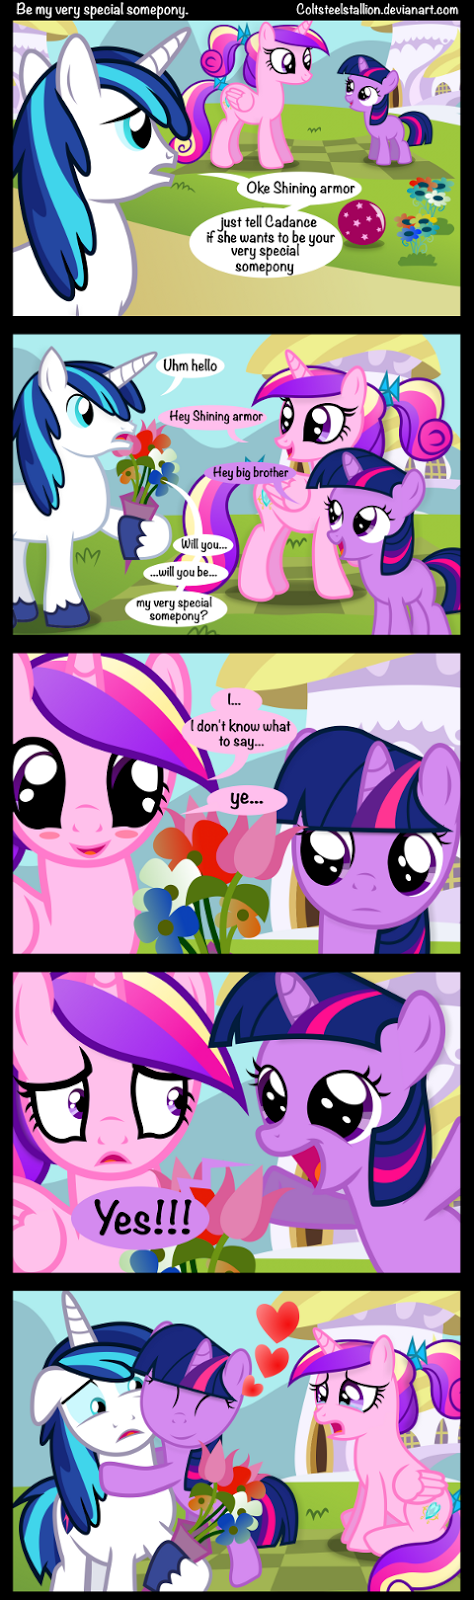 Twilight Sparkle intrudes on Shining Armor's asking Princess Cadance to be his very special somepony.